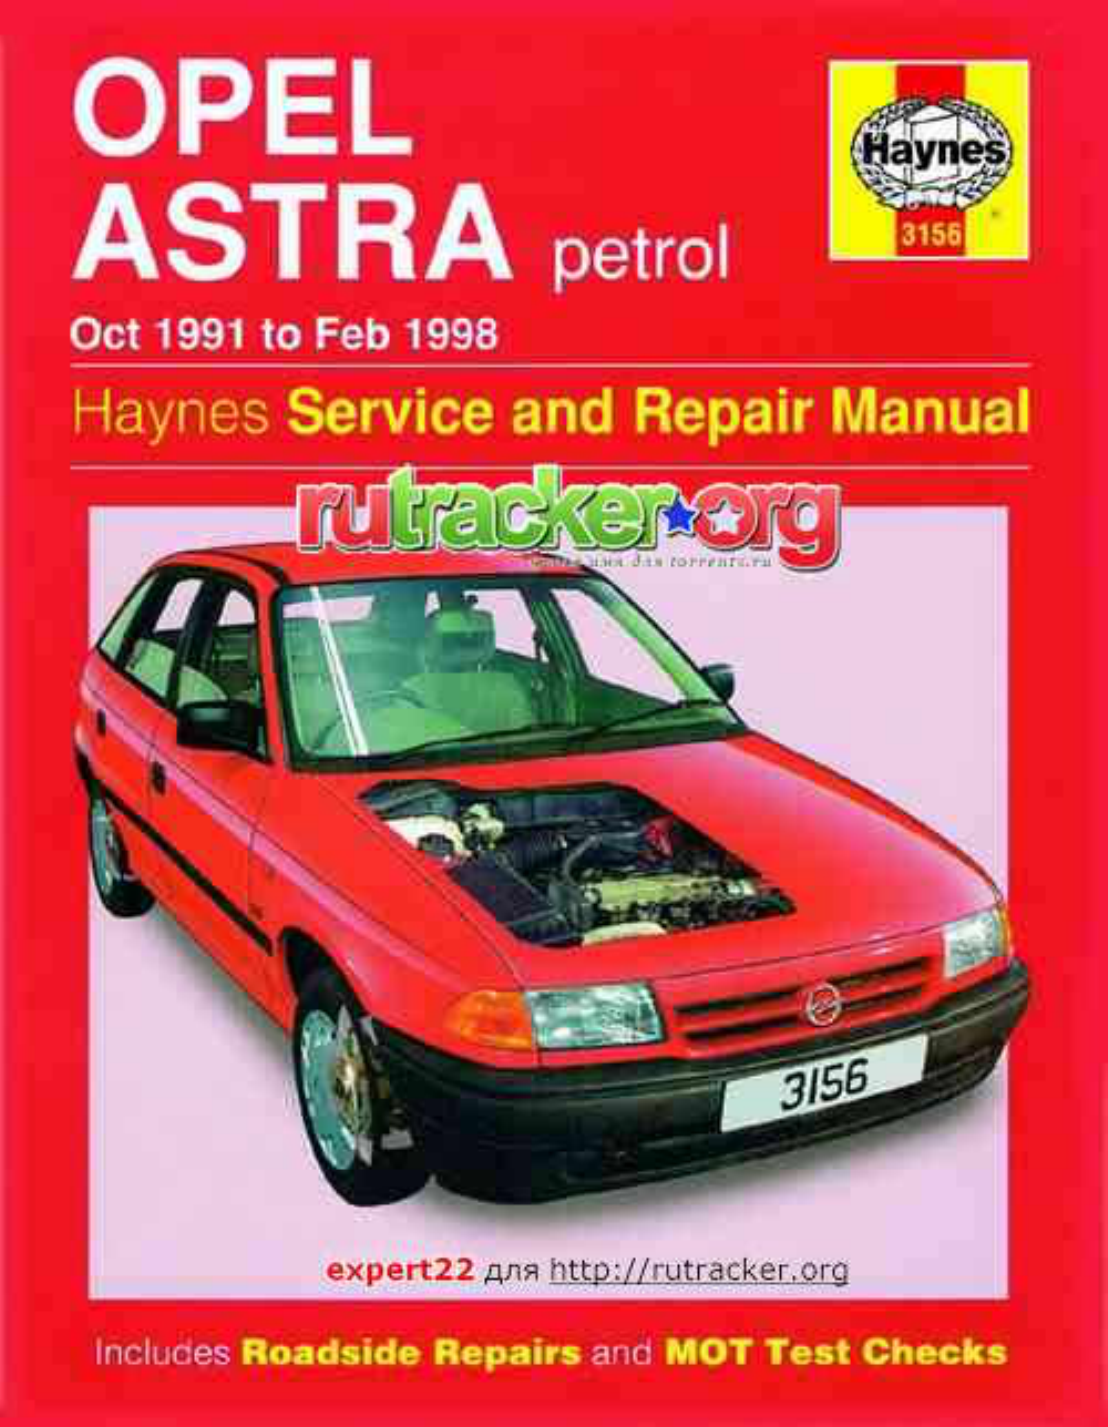 opel astra f manual various owner manual guide u2022 rh justk co